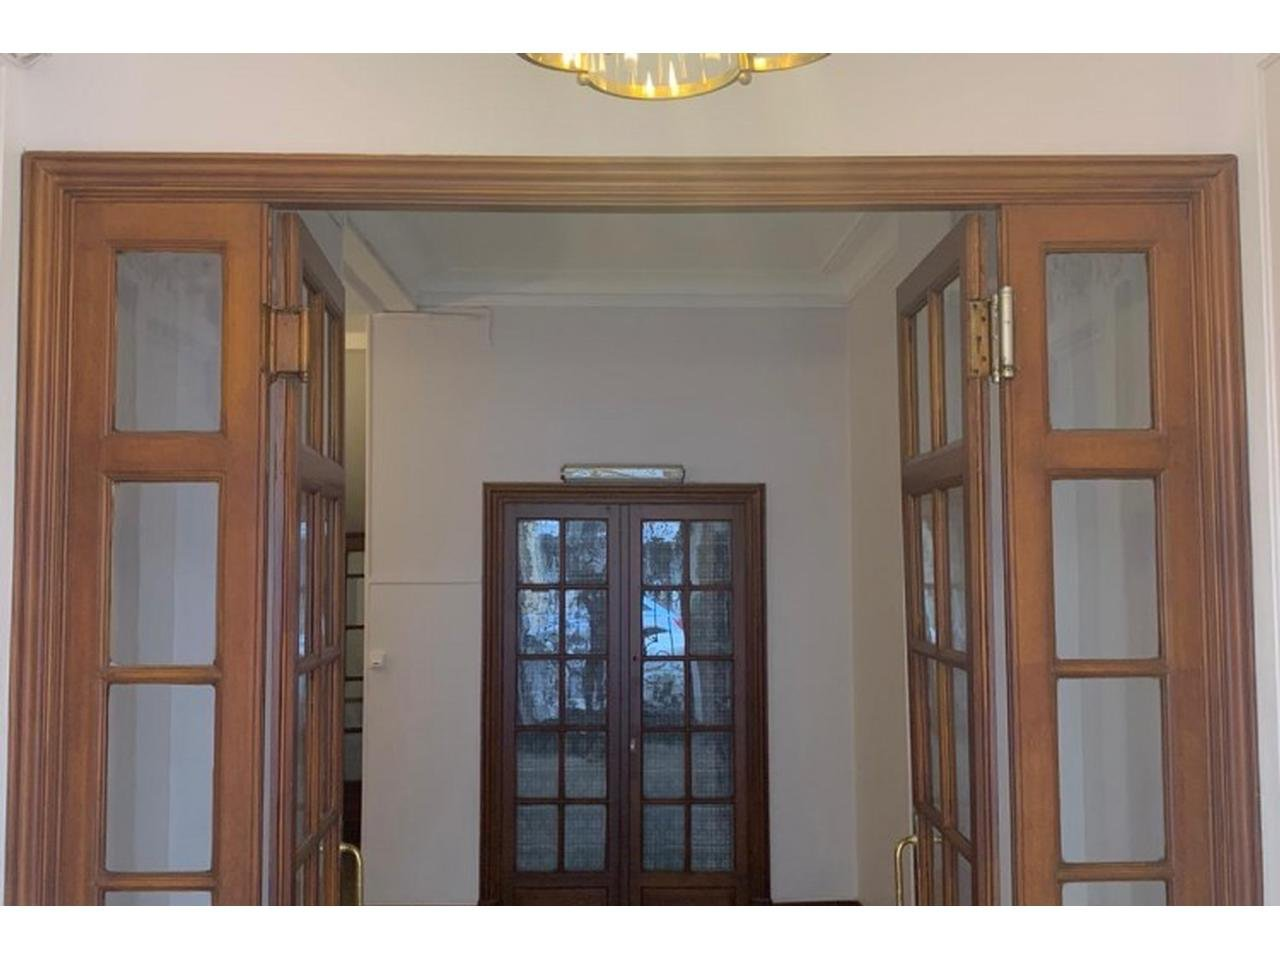 4-room apartment of 98.11 m2 on the 3rd floor in a bourgeois building.